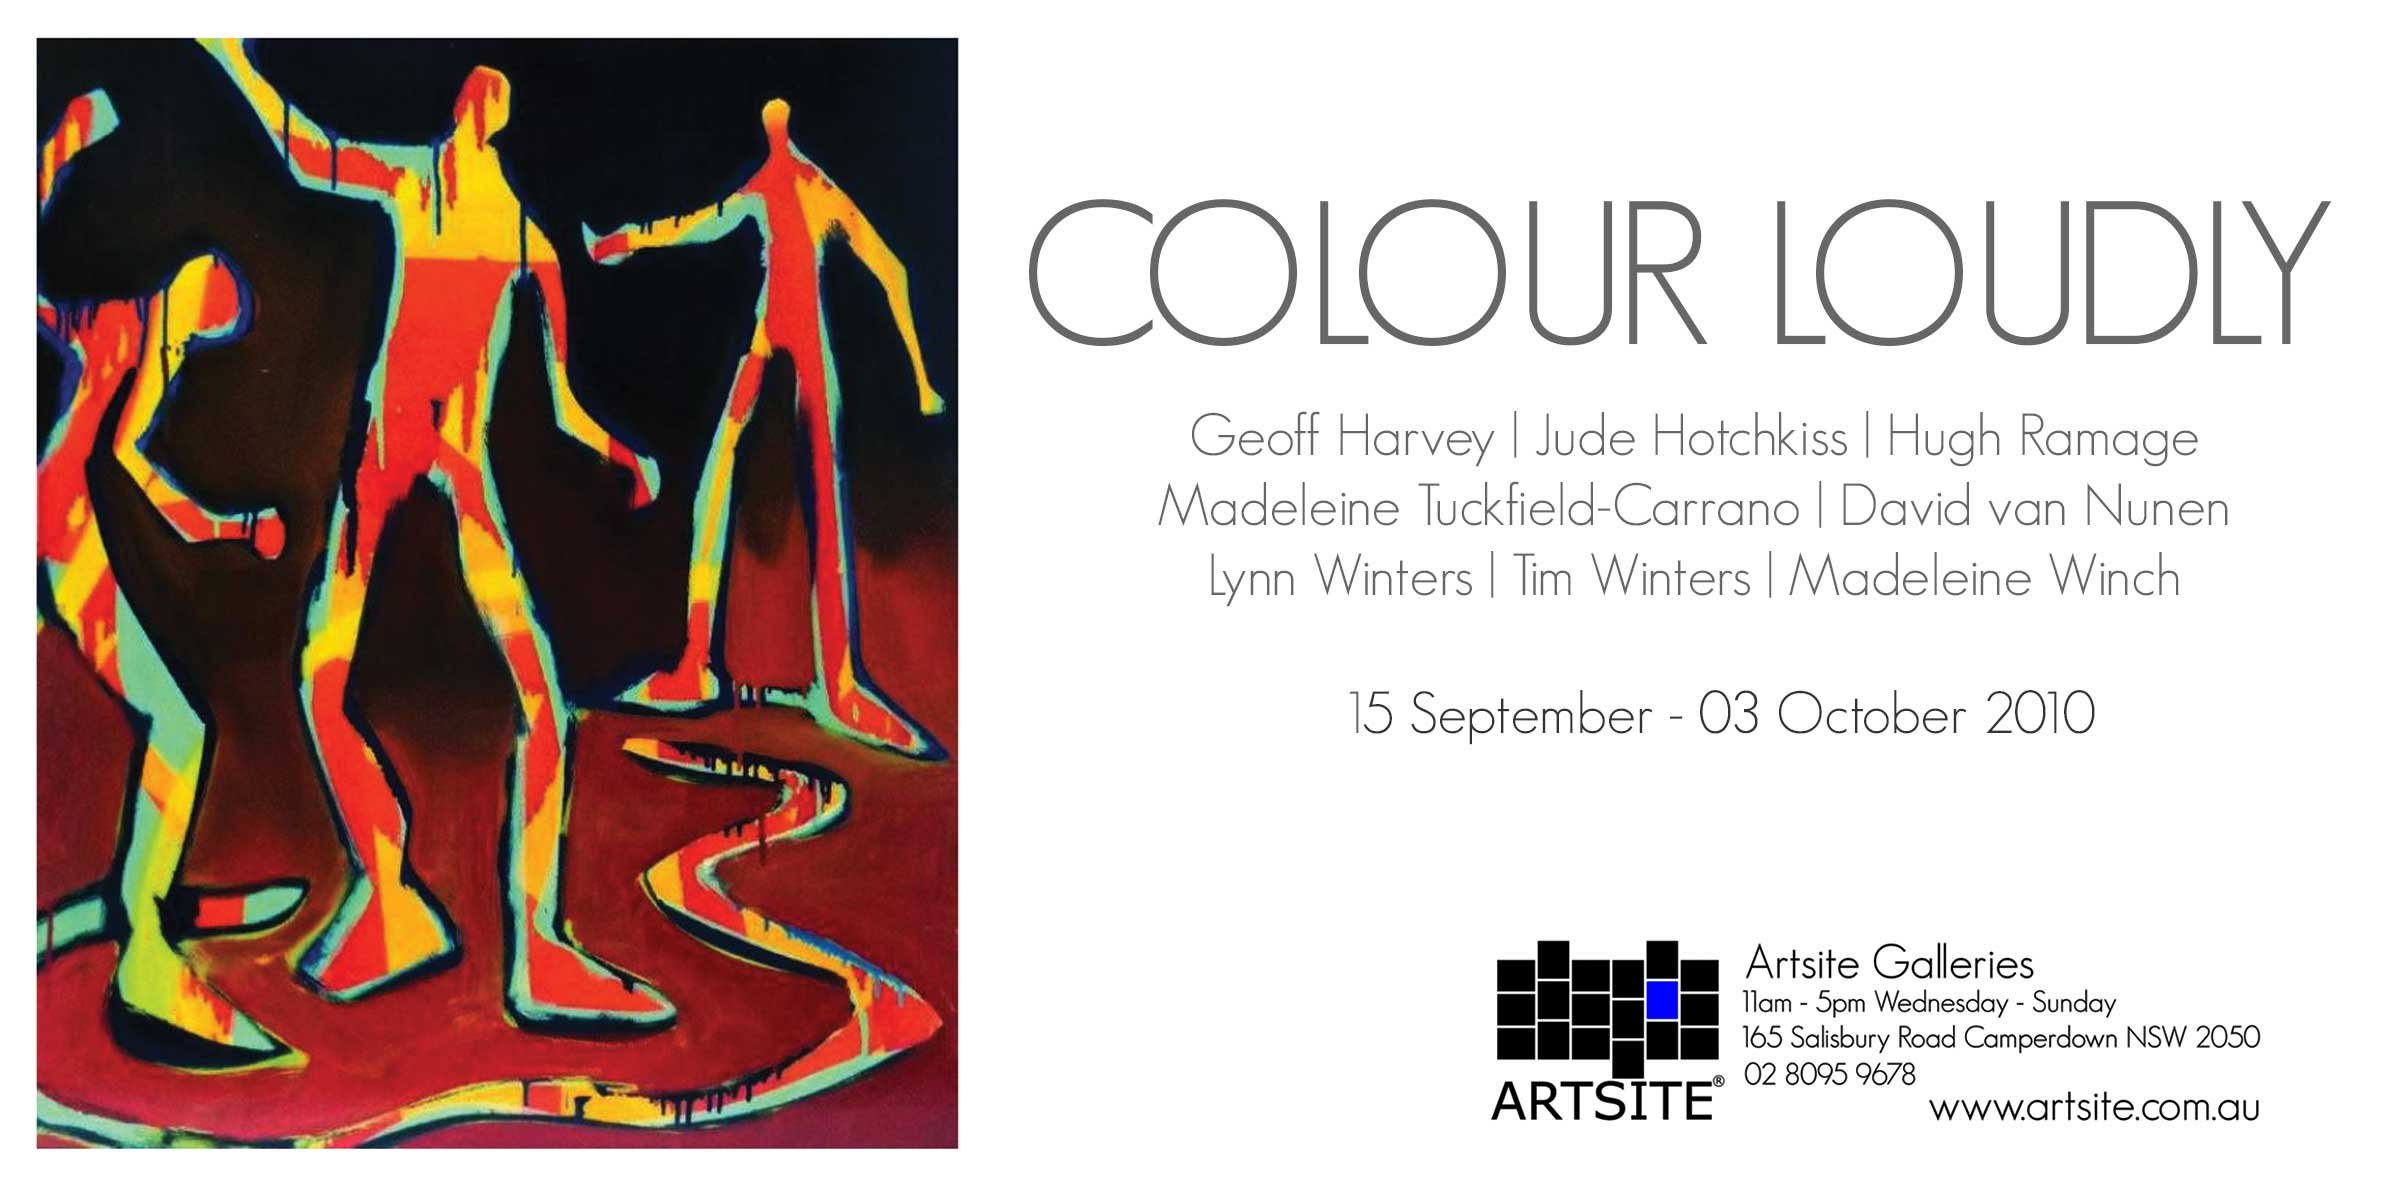 View Exhibition at Artsite Gallery, Sydney: 01 - 23 October 2010: COLOUR LOUDLY September 2010: Geoff Harvey, Jude Hotchkiss, Hugh Ramage, Madeleine Tuckfield-Carrano, David van Nunen, Lynn Winters, Tim Winters, Madeleine Winch